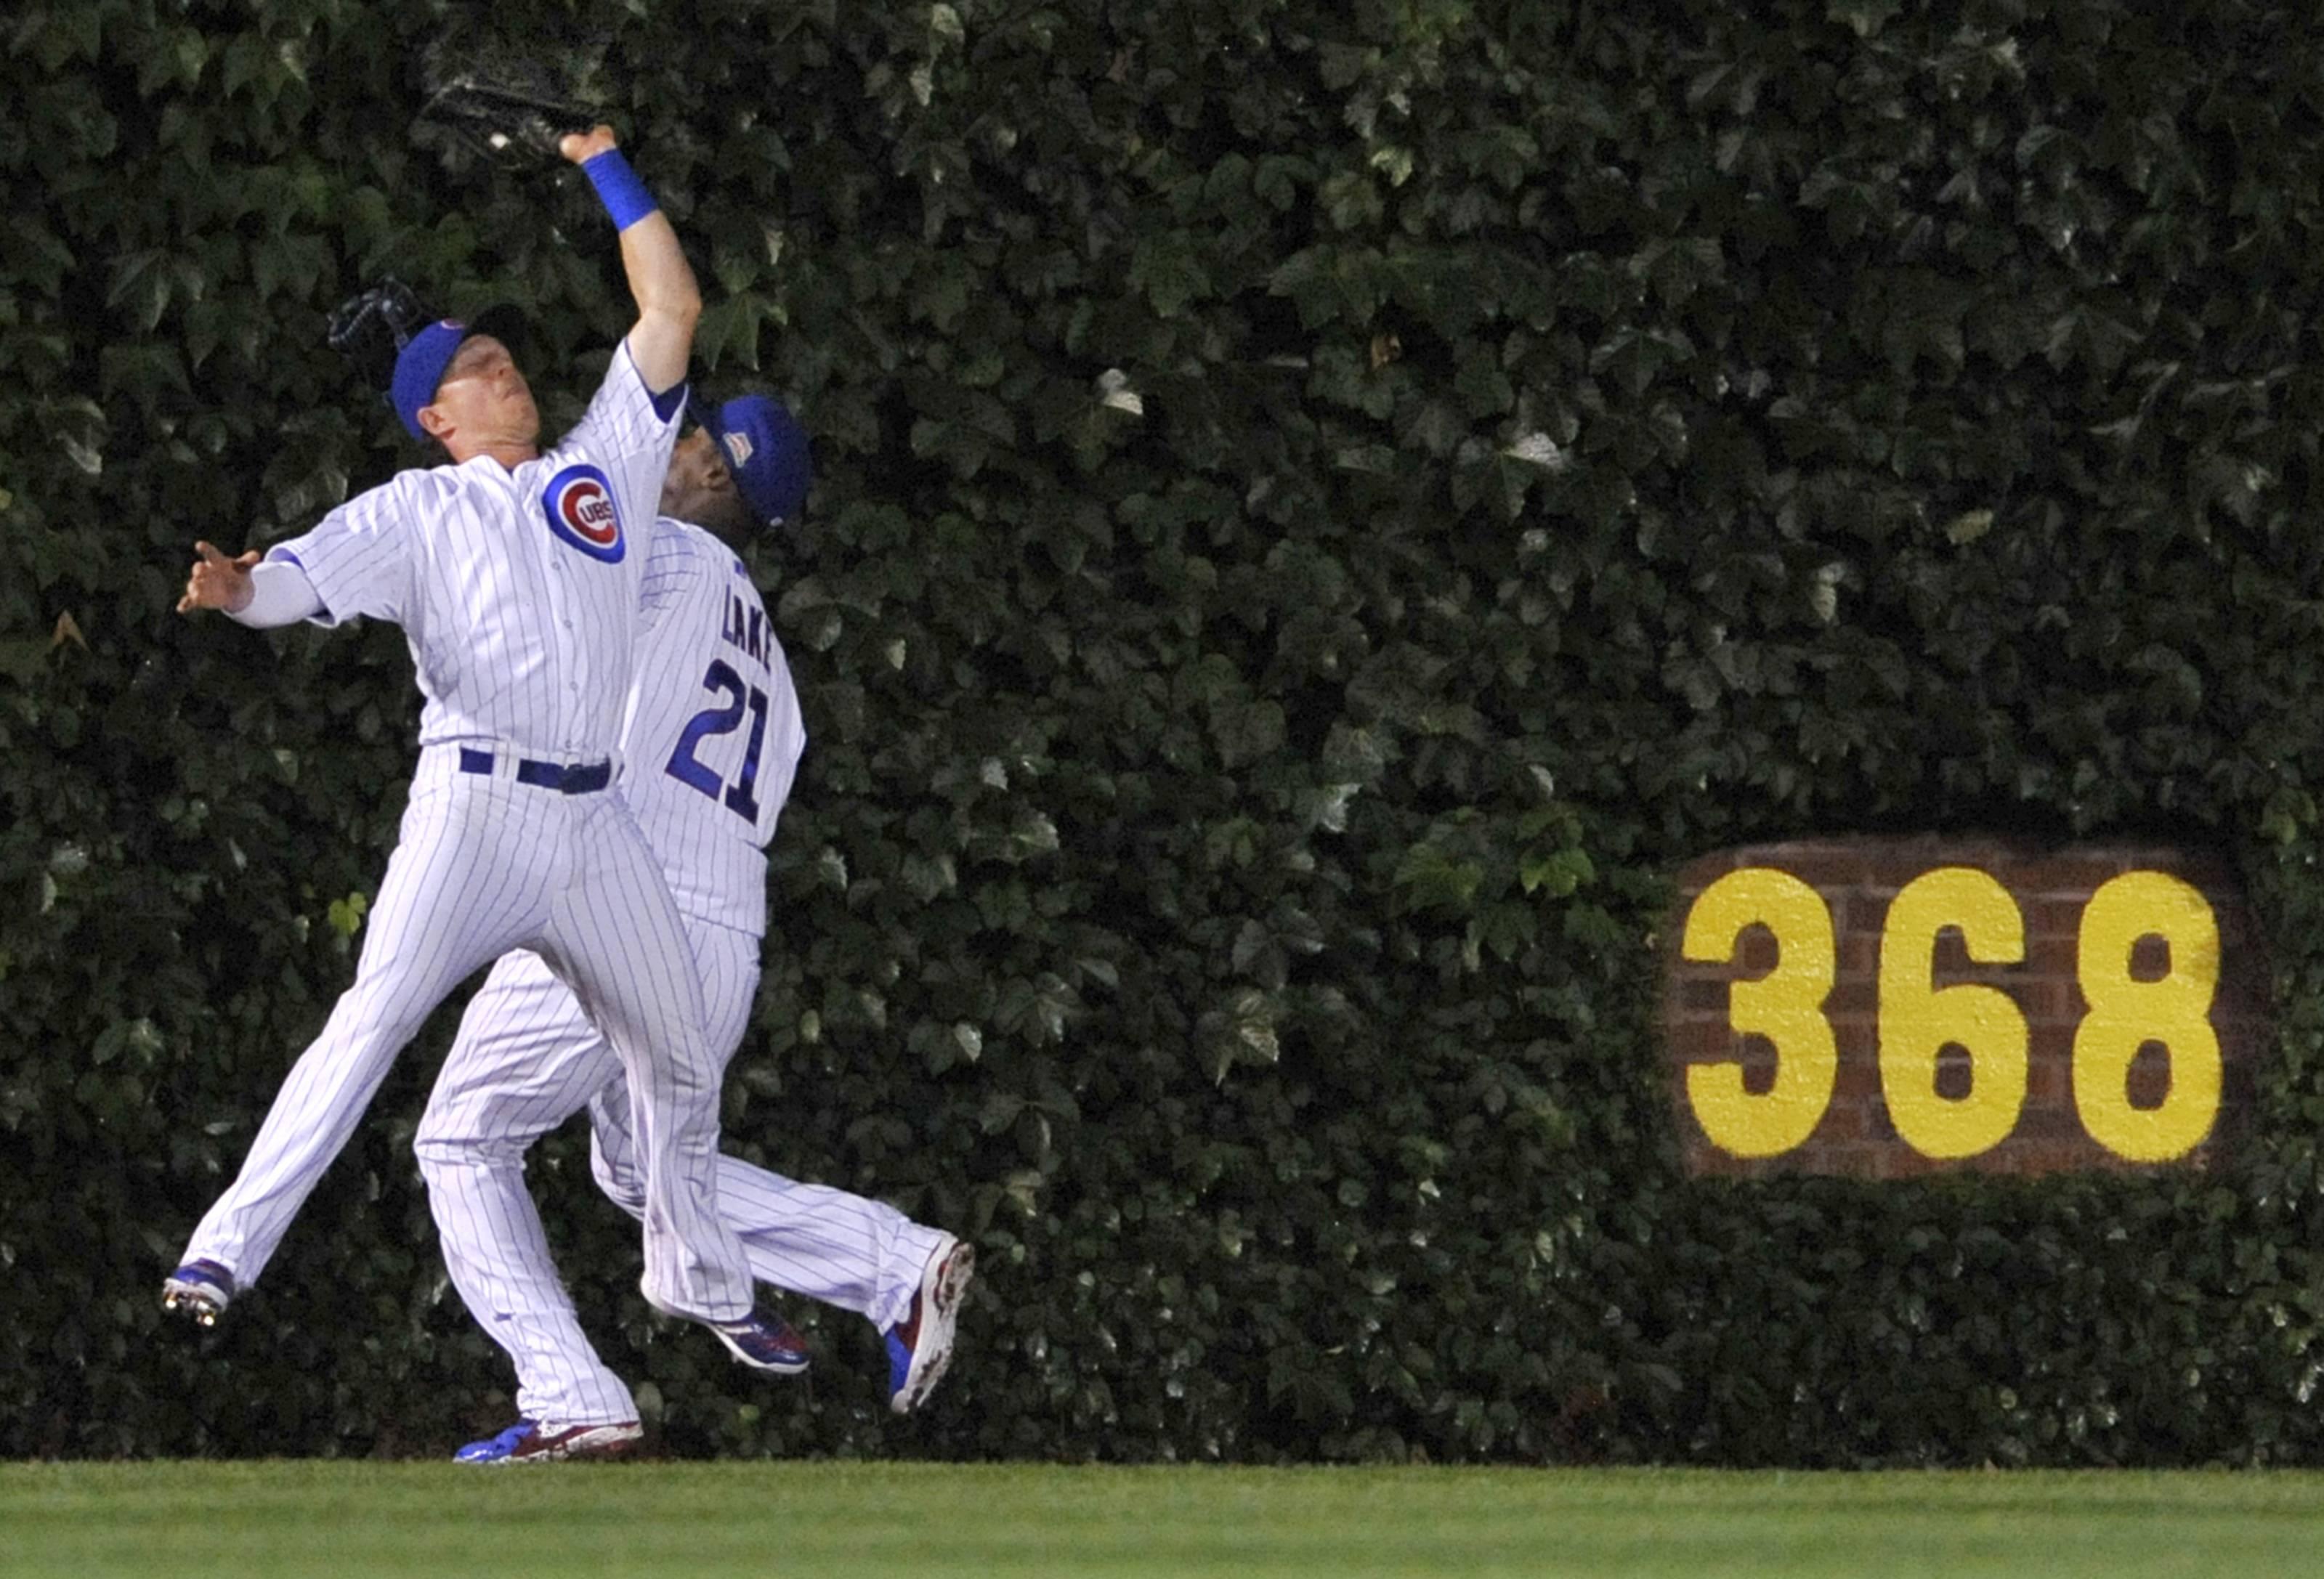 Cubs left fielder Chris Coghlan, foreground, barely misses a collision with center fielder Junior Lake while catching a flyball hit by Pittsburgh's Clint Barmes during the third inning at Wrigley Field on Saturday.